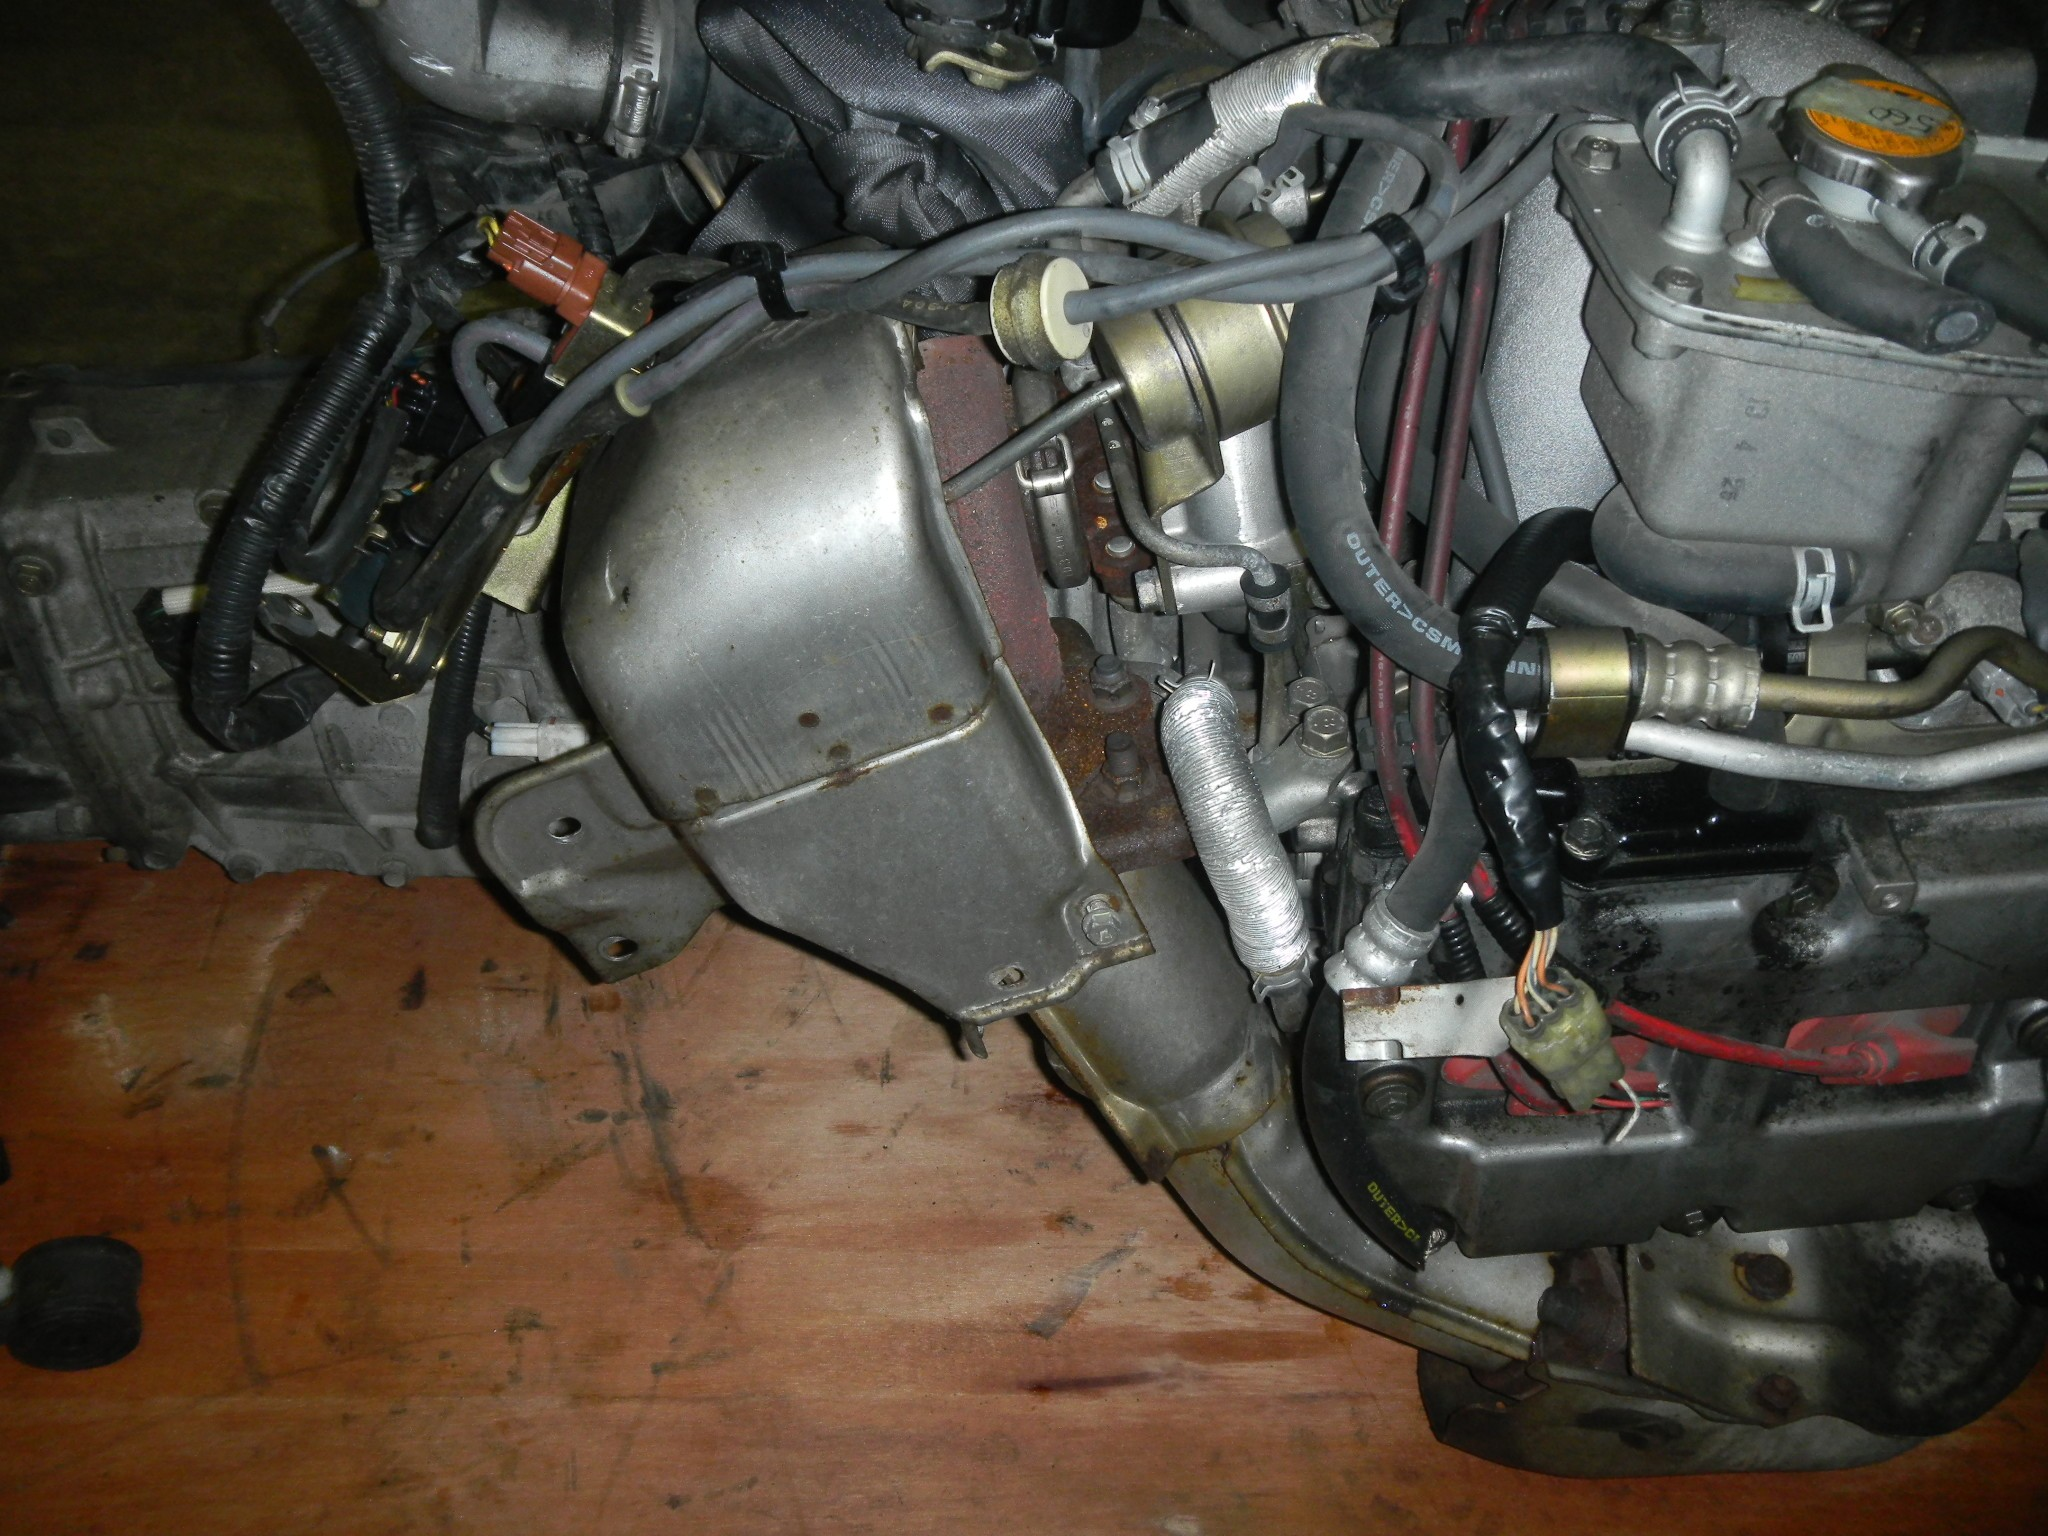 JDM SUBARU FORESTER (99-01) EJ20 TURBO ENGINE WITH 5 SPEED